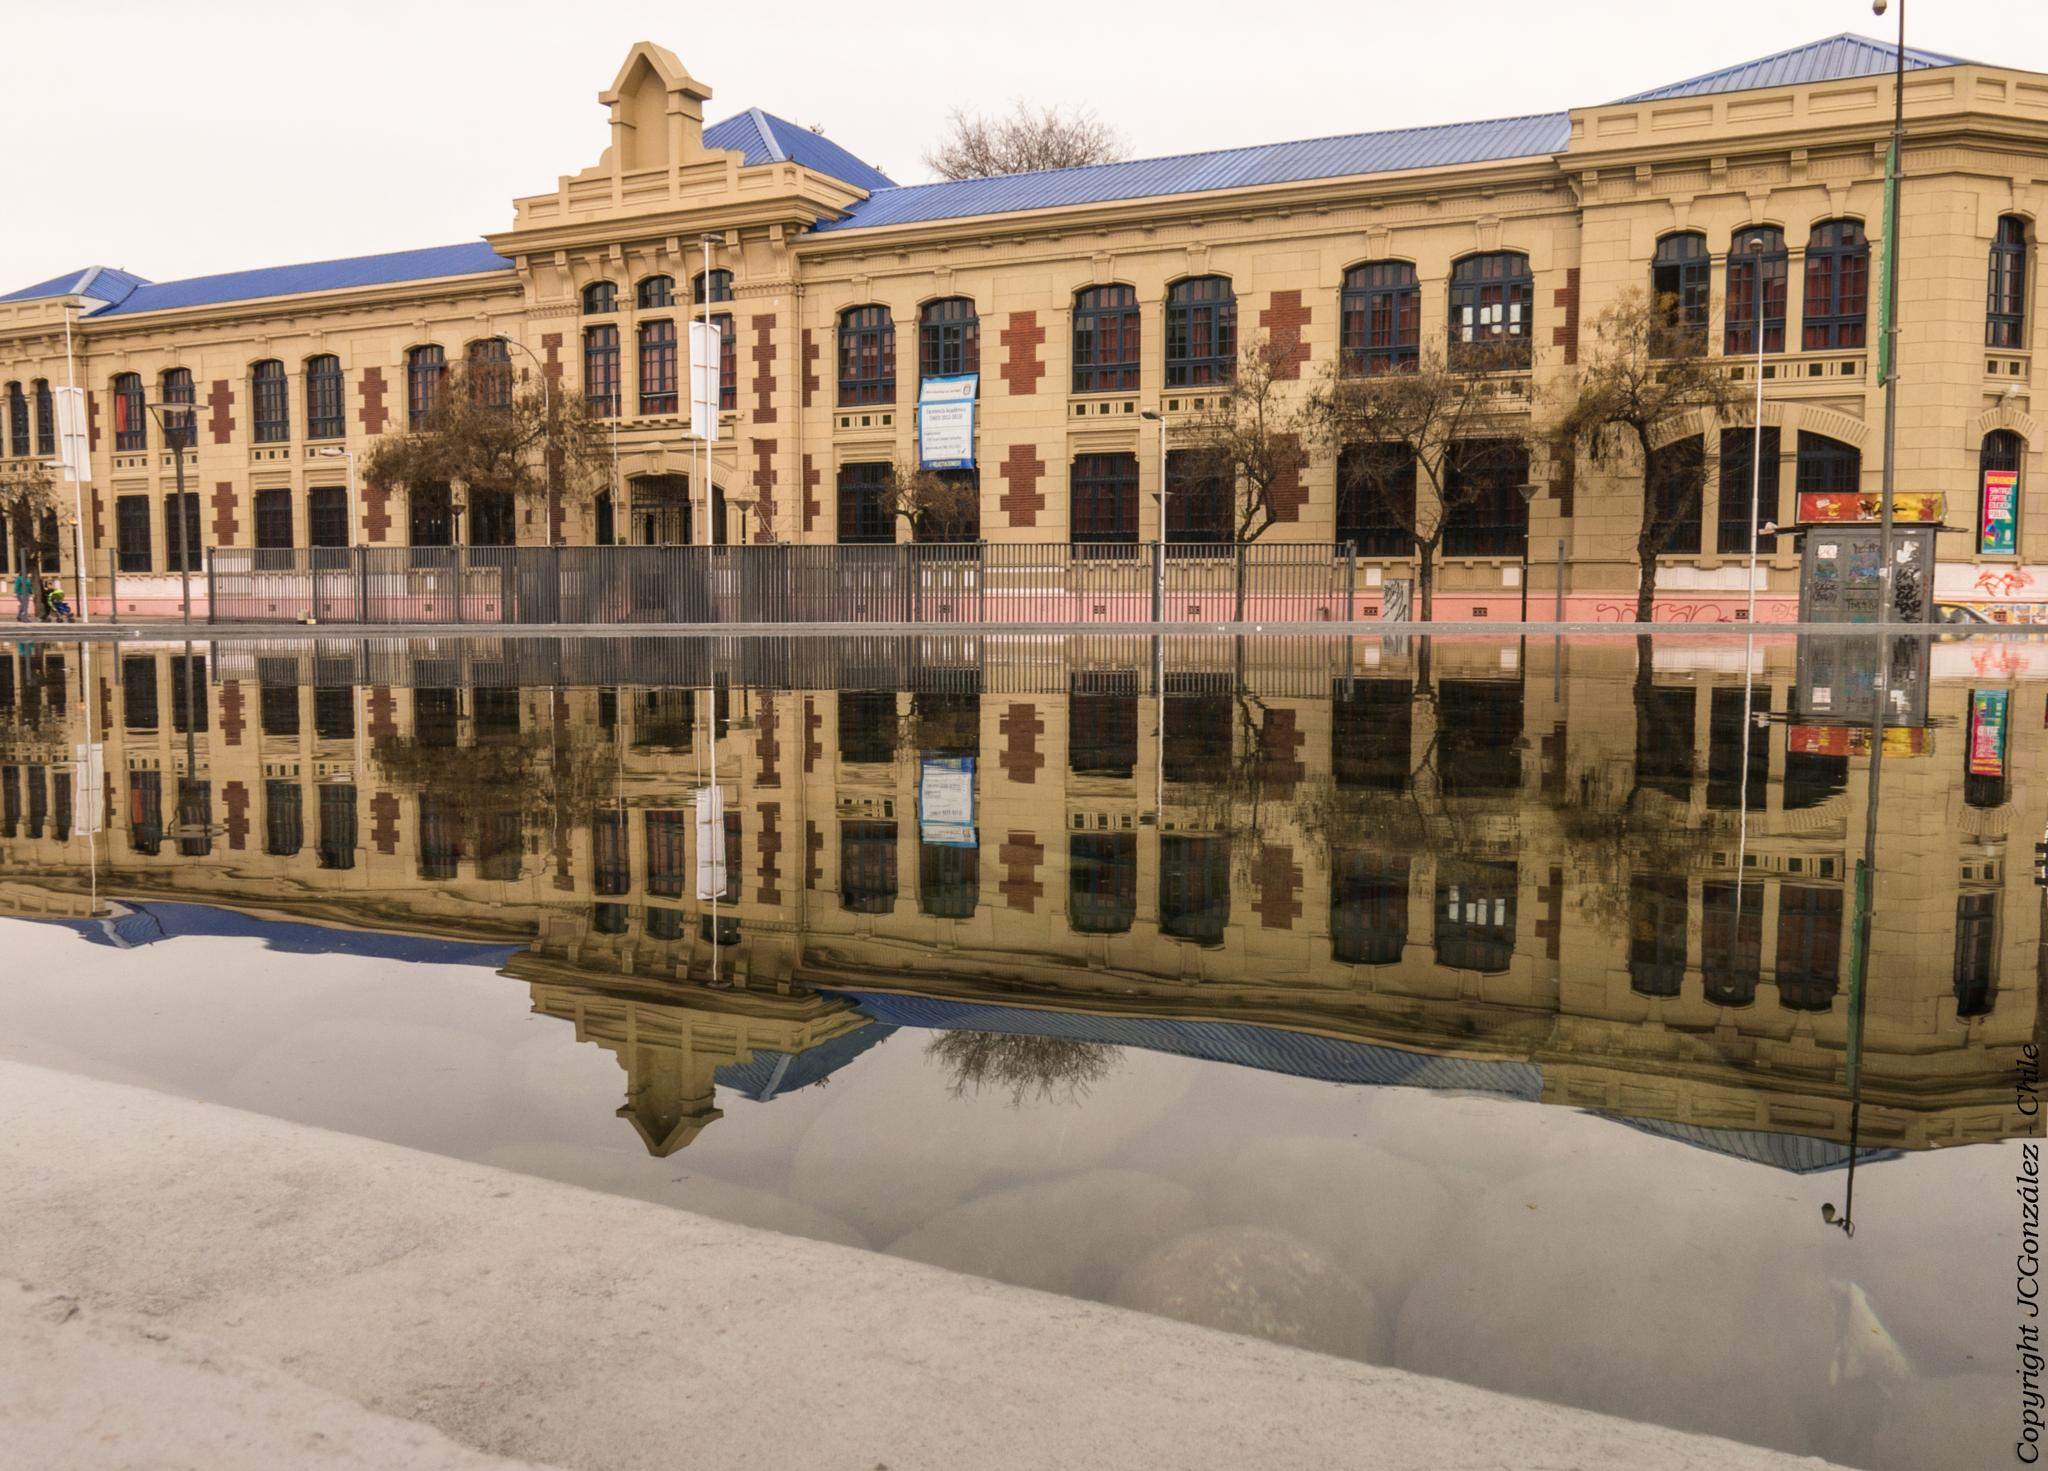 Reflejos by JuanCaPhotography